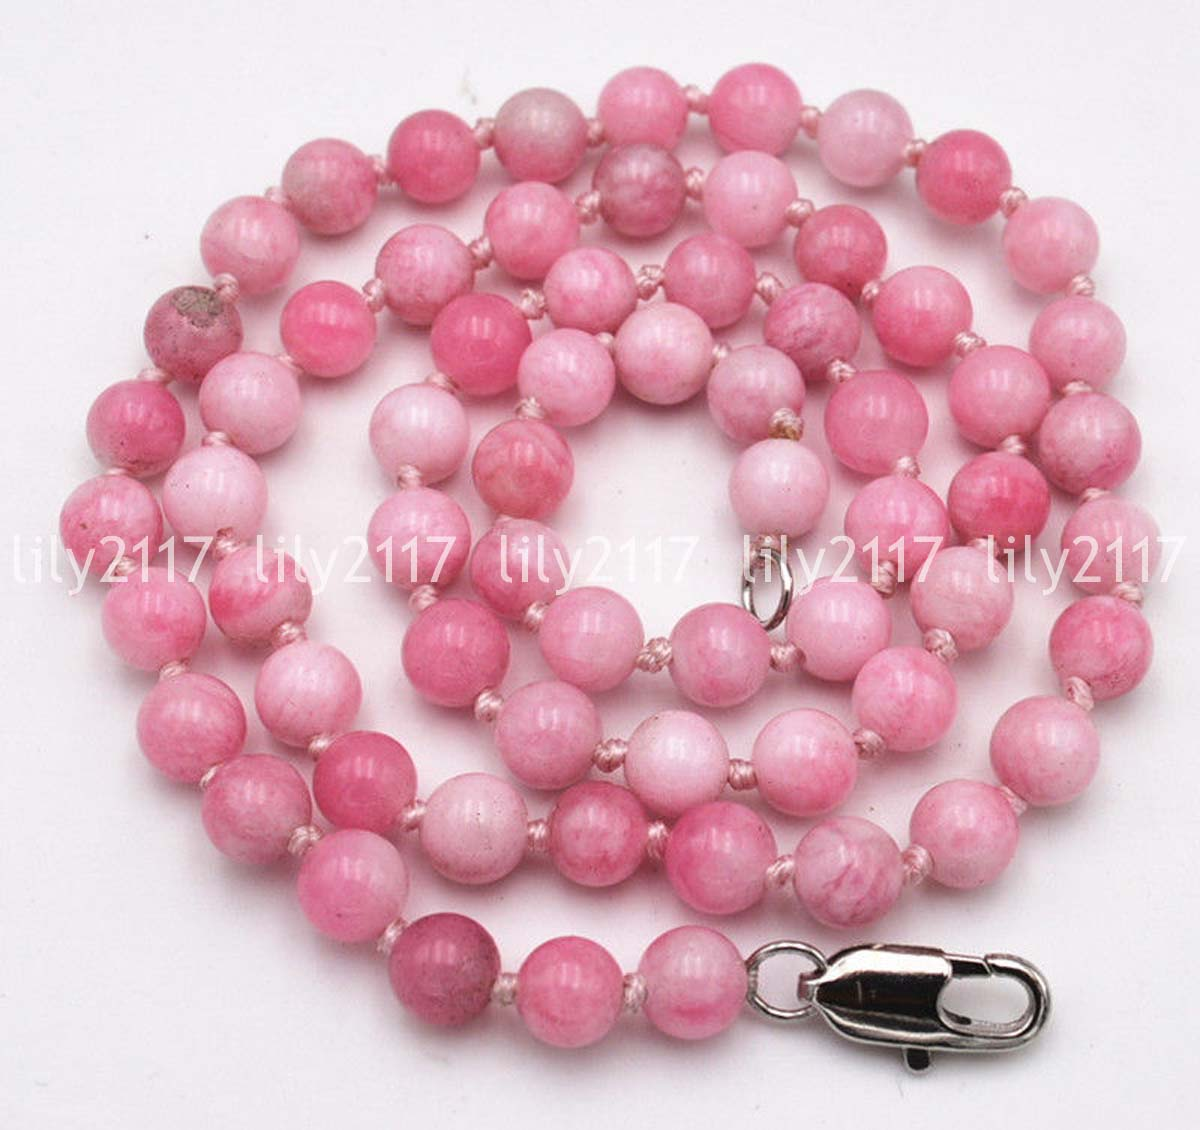 Beautiful Natural 6-14mm Blue Jade Round Gemstone Beads Necklace 18/'/' AAA